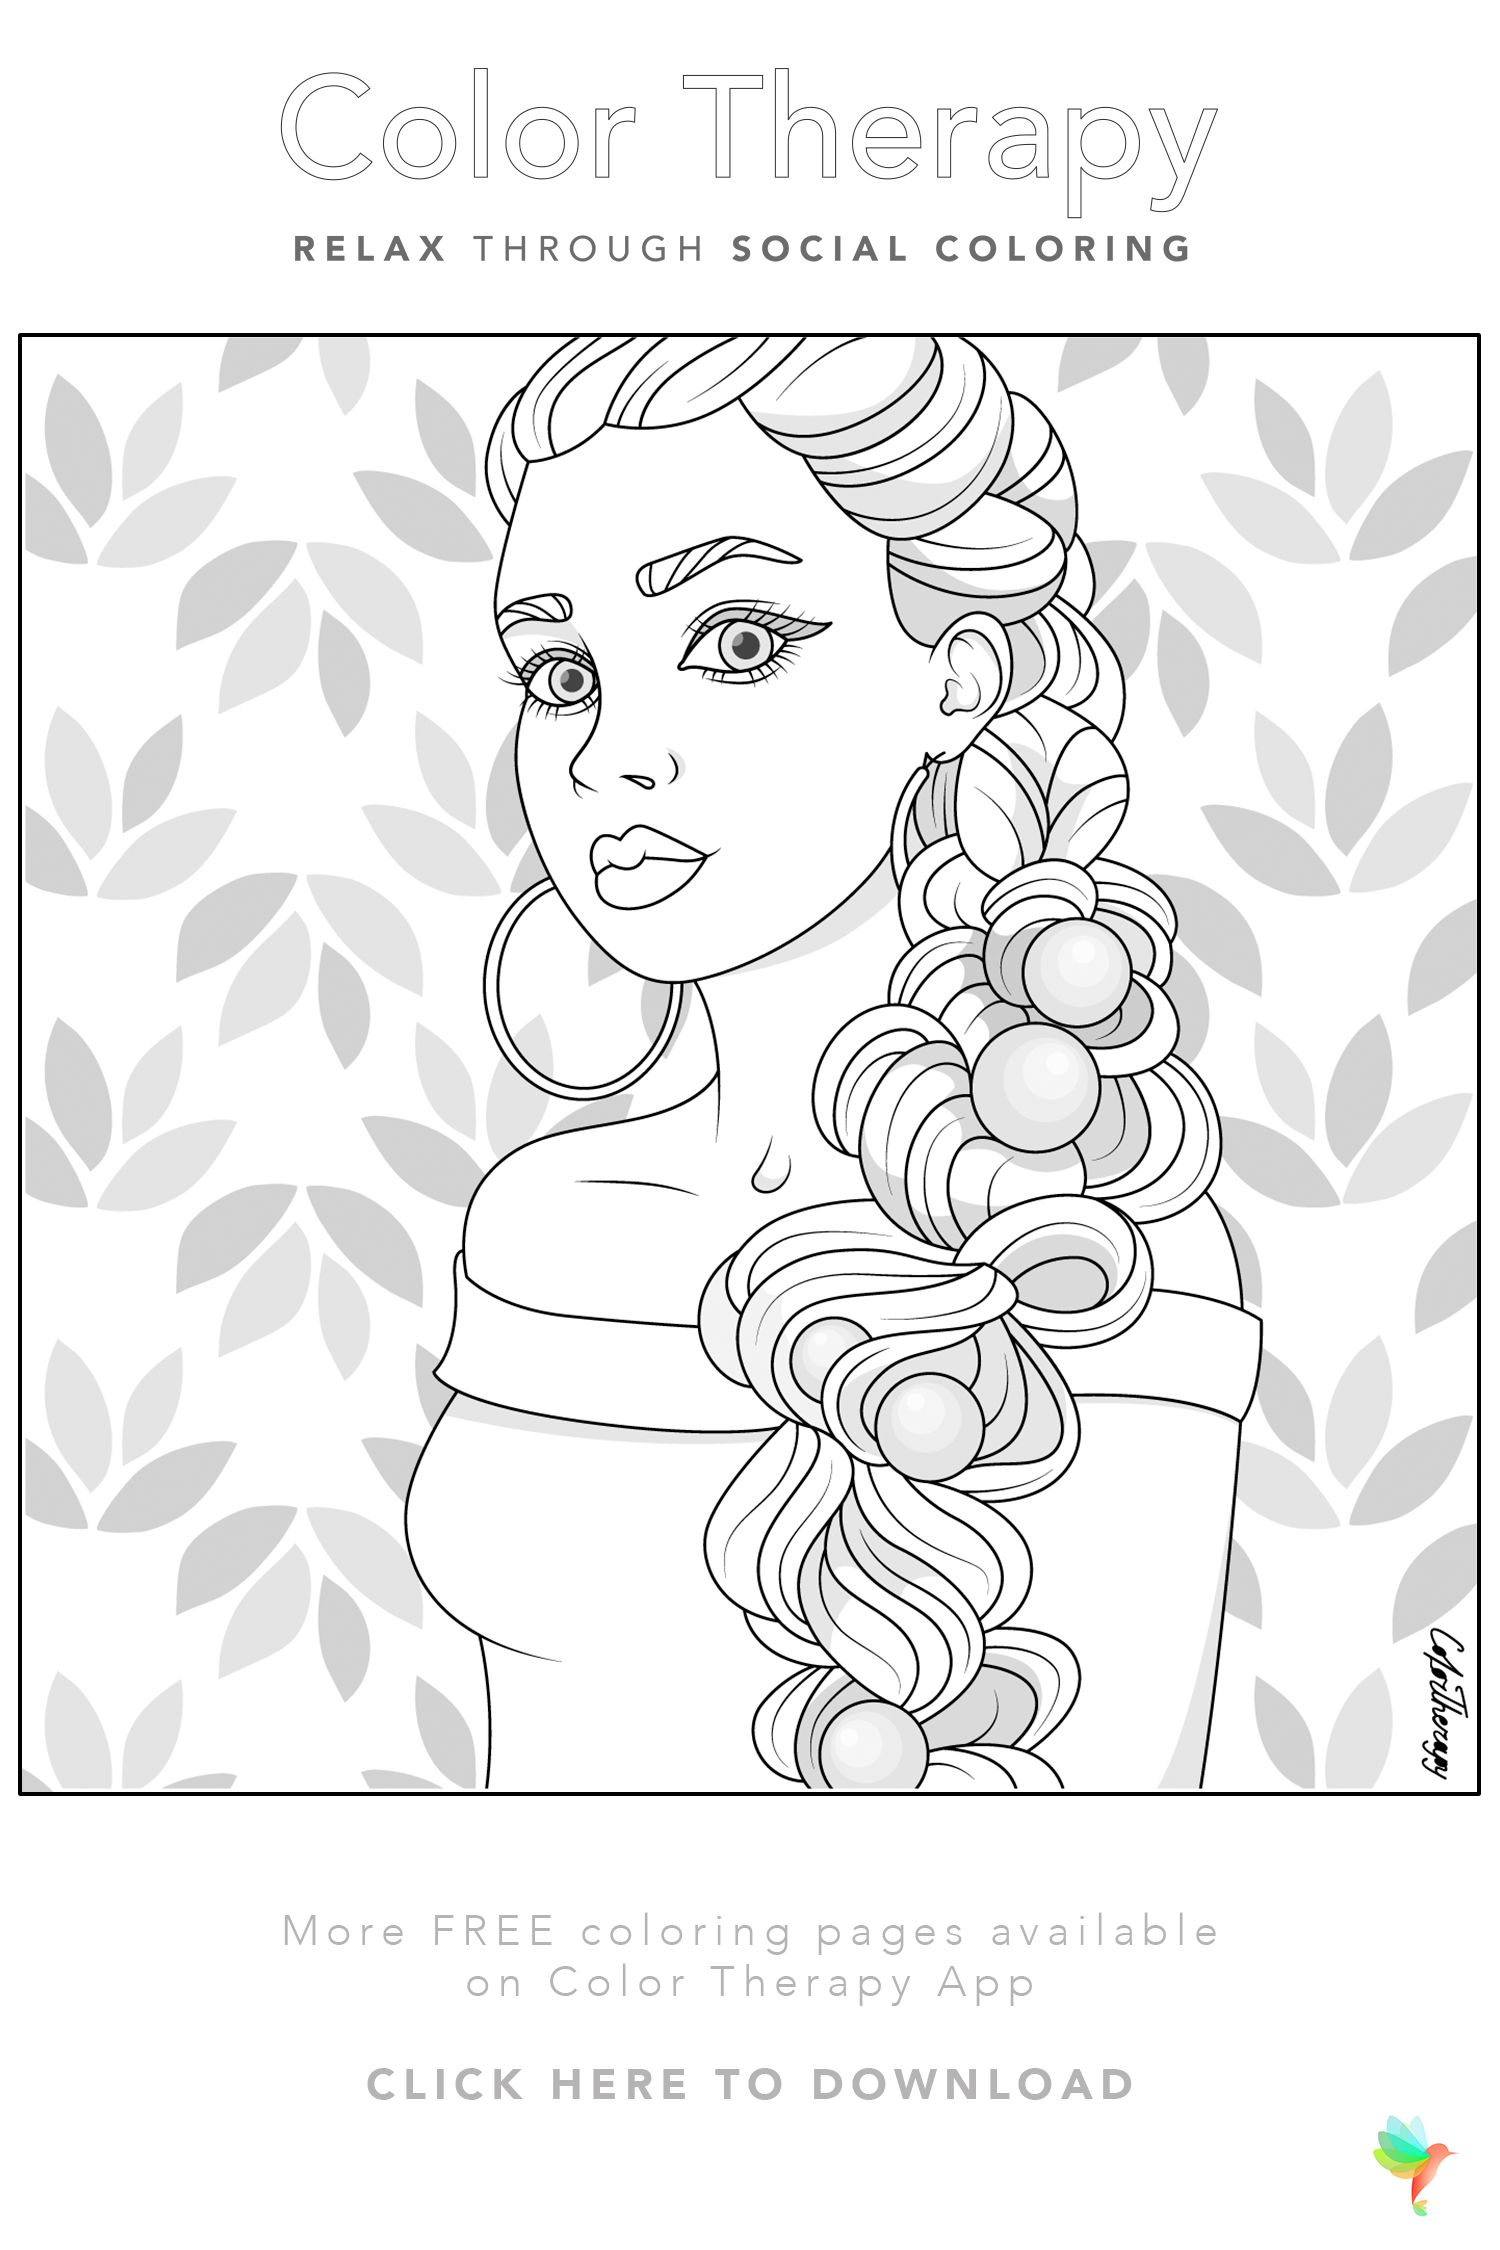 Color Therapy Gift Of The Day Free Coloring Template Coloring Pages For Girls Coloring Book Art Free Coloring Pages